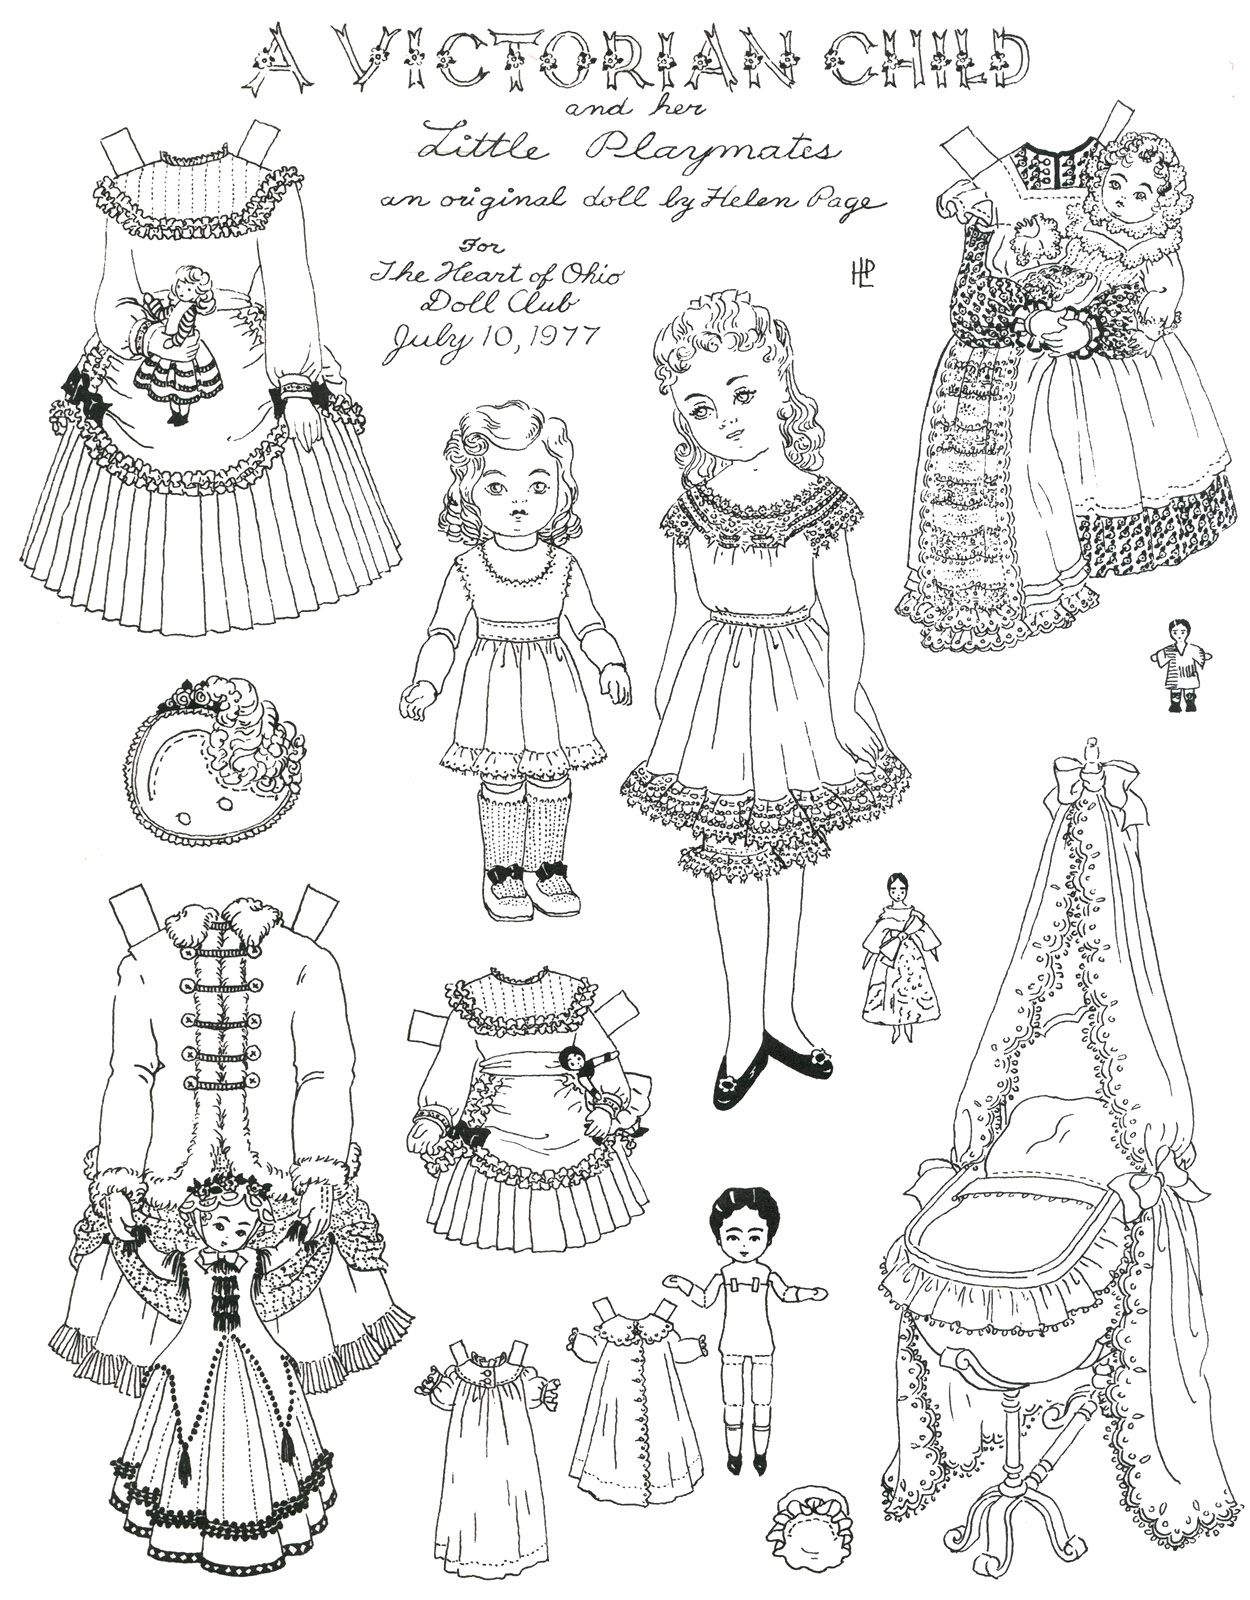 Kids Victorian Clothes Vintage And Children 2 Ripping Free Printable - Printable Paper Dolls To Color Free